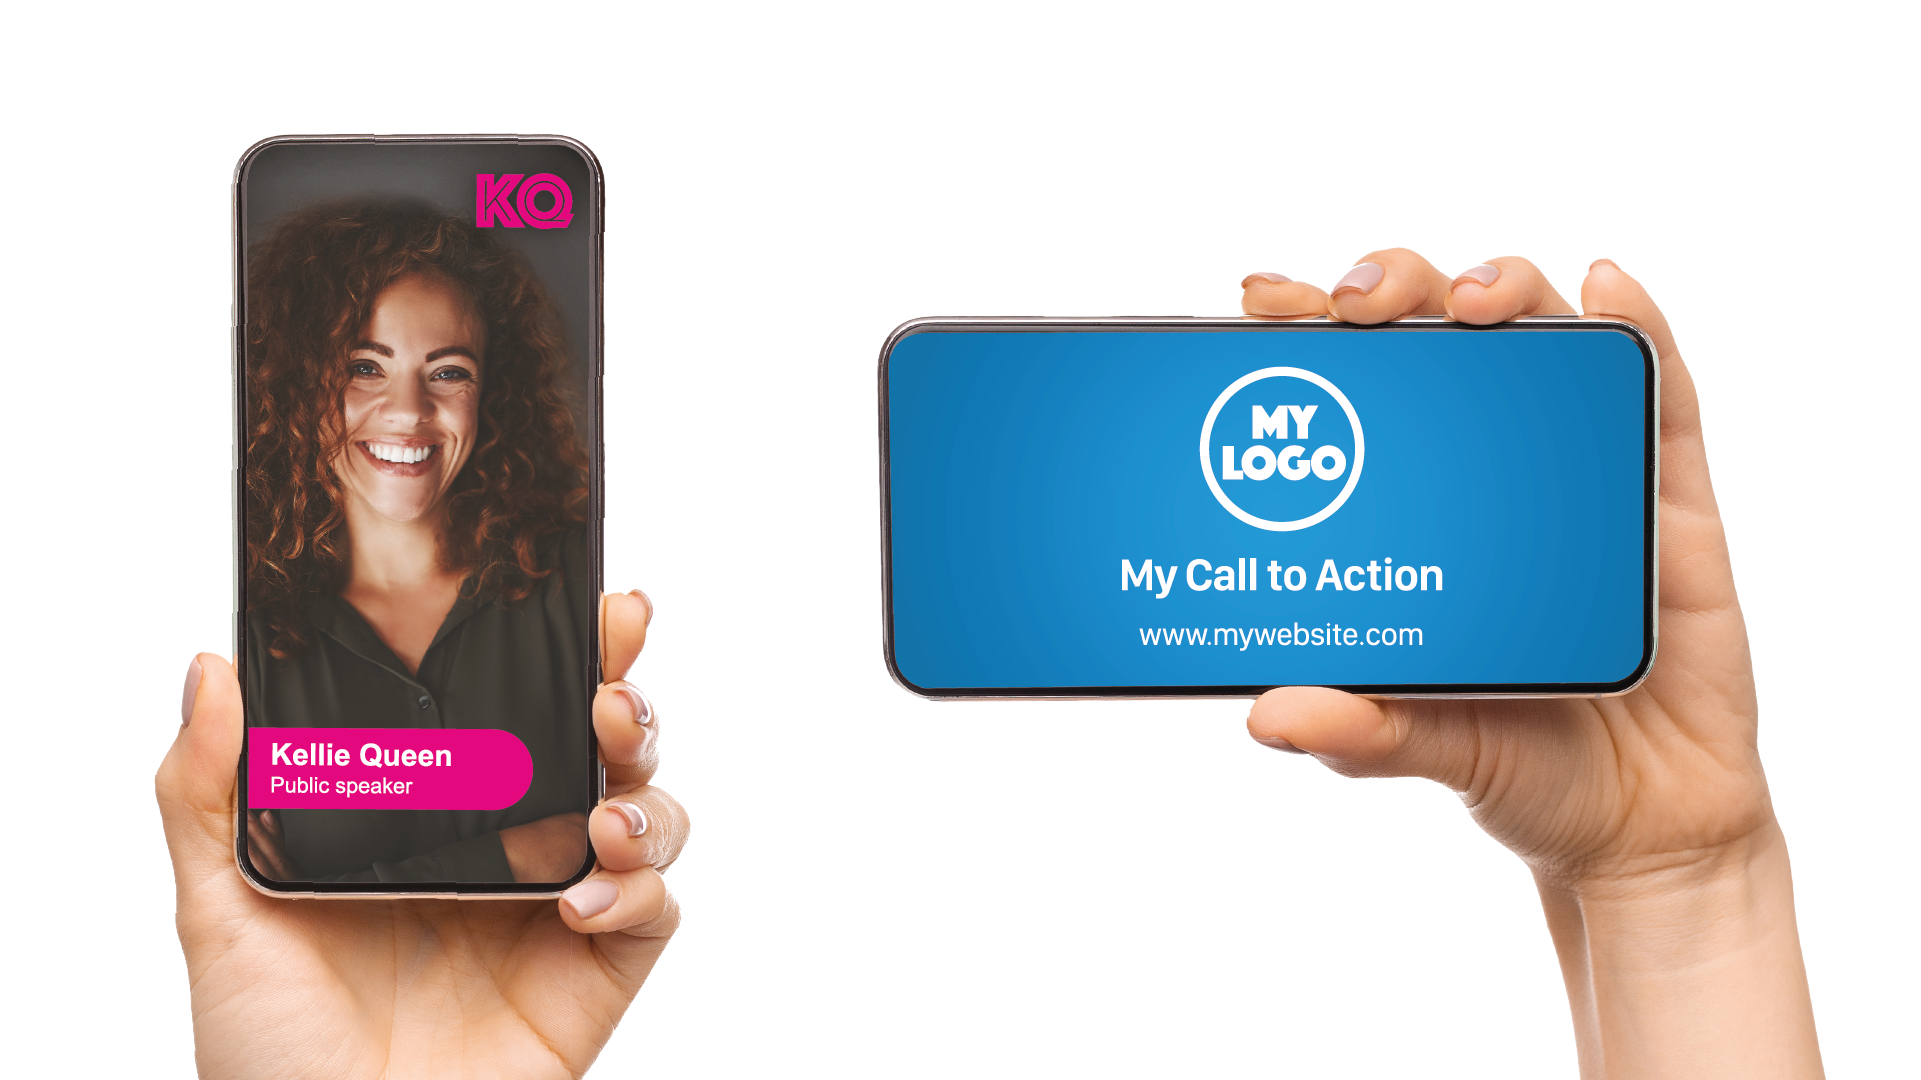 One hand holding phone vertically. On the phone screen is a woman smiling. Another hand holds the phone horizontally with a blue video title template displayed on the phone screen.